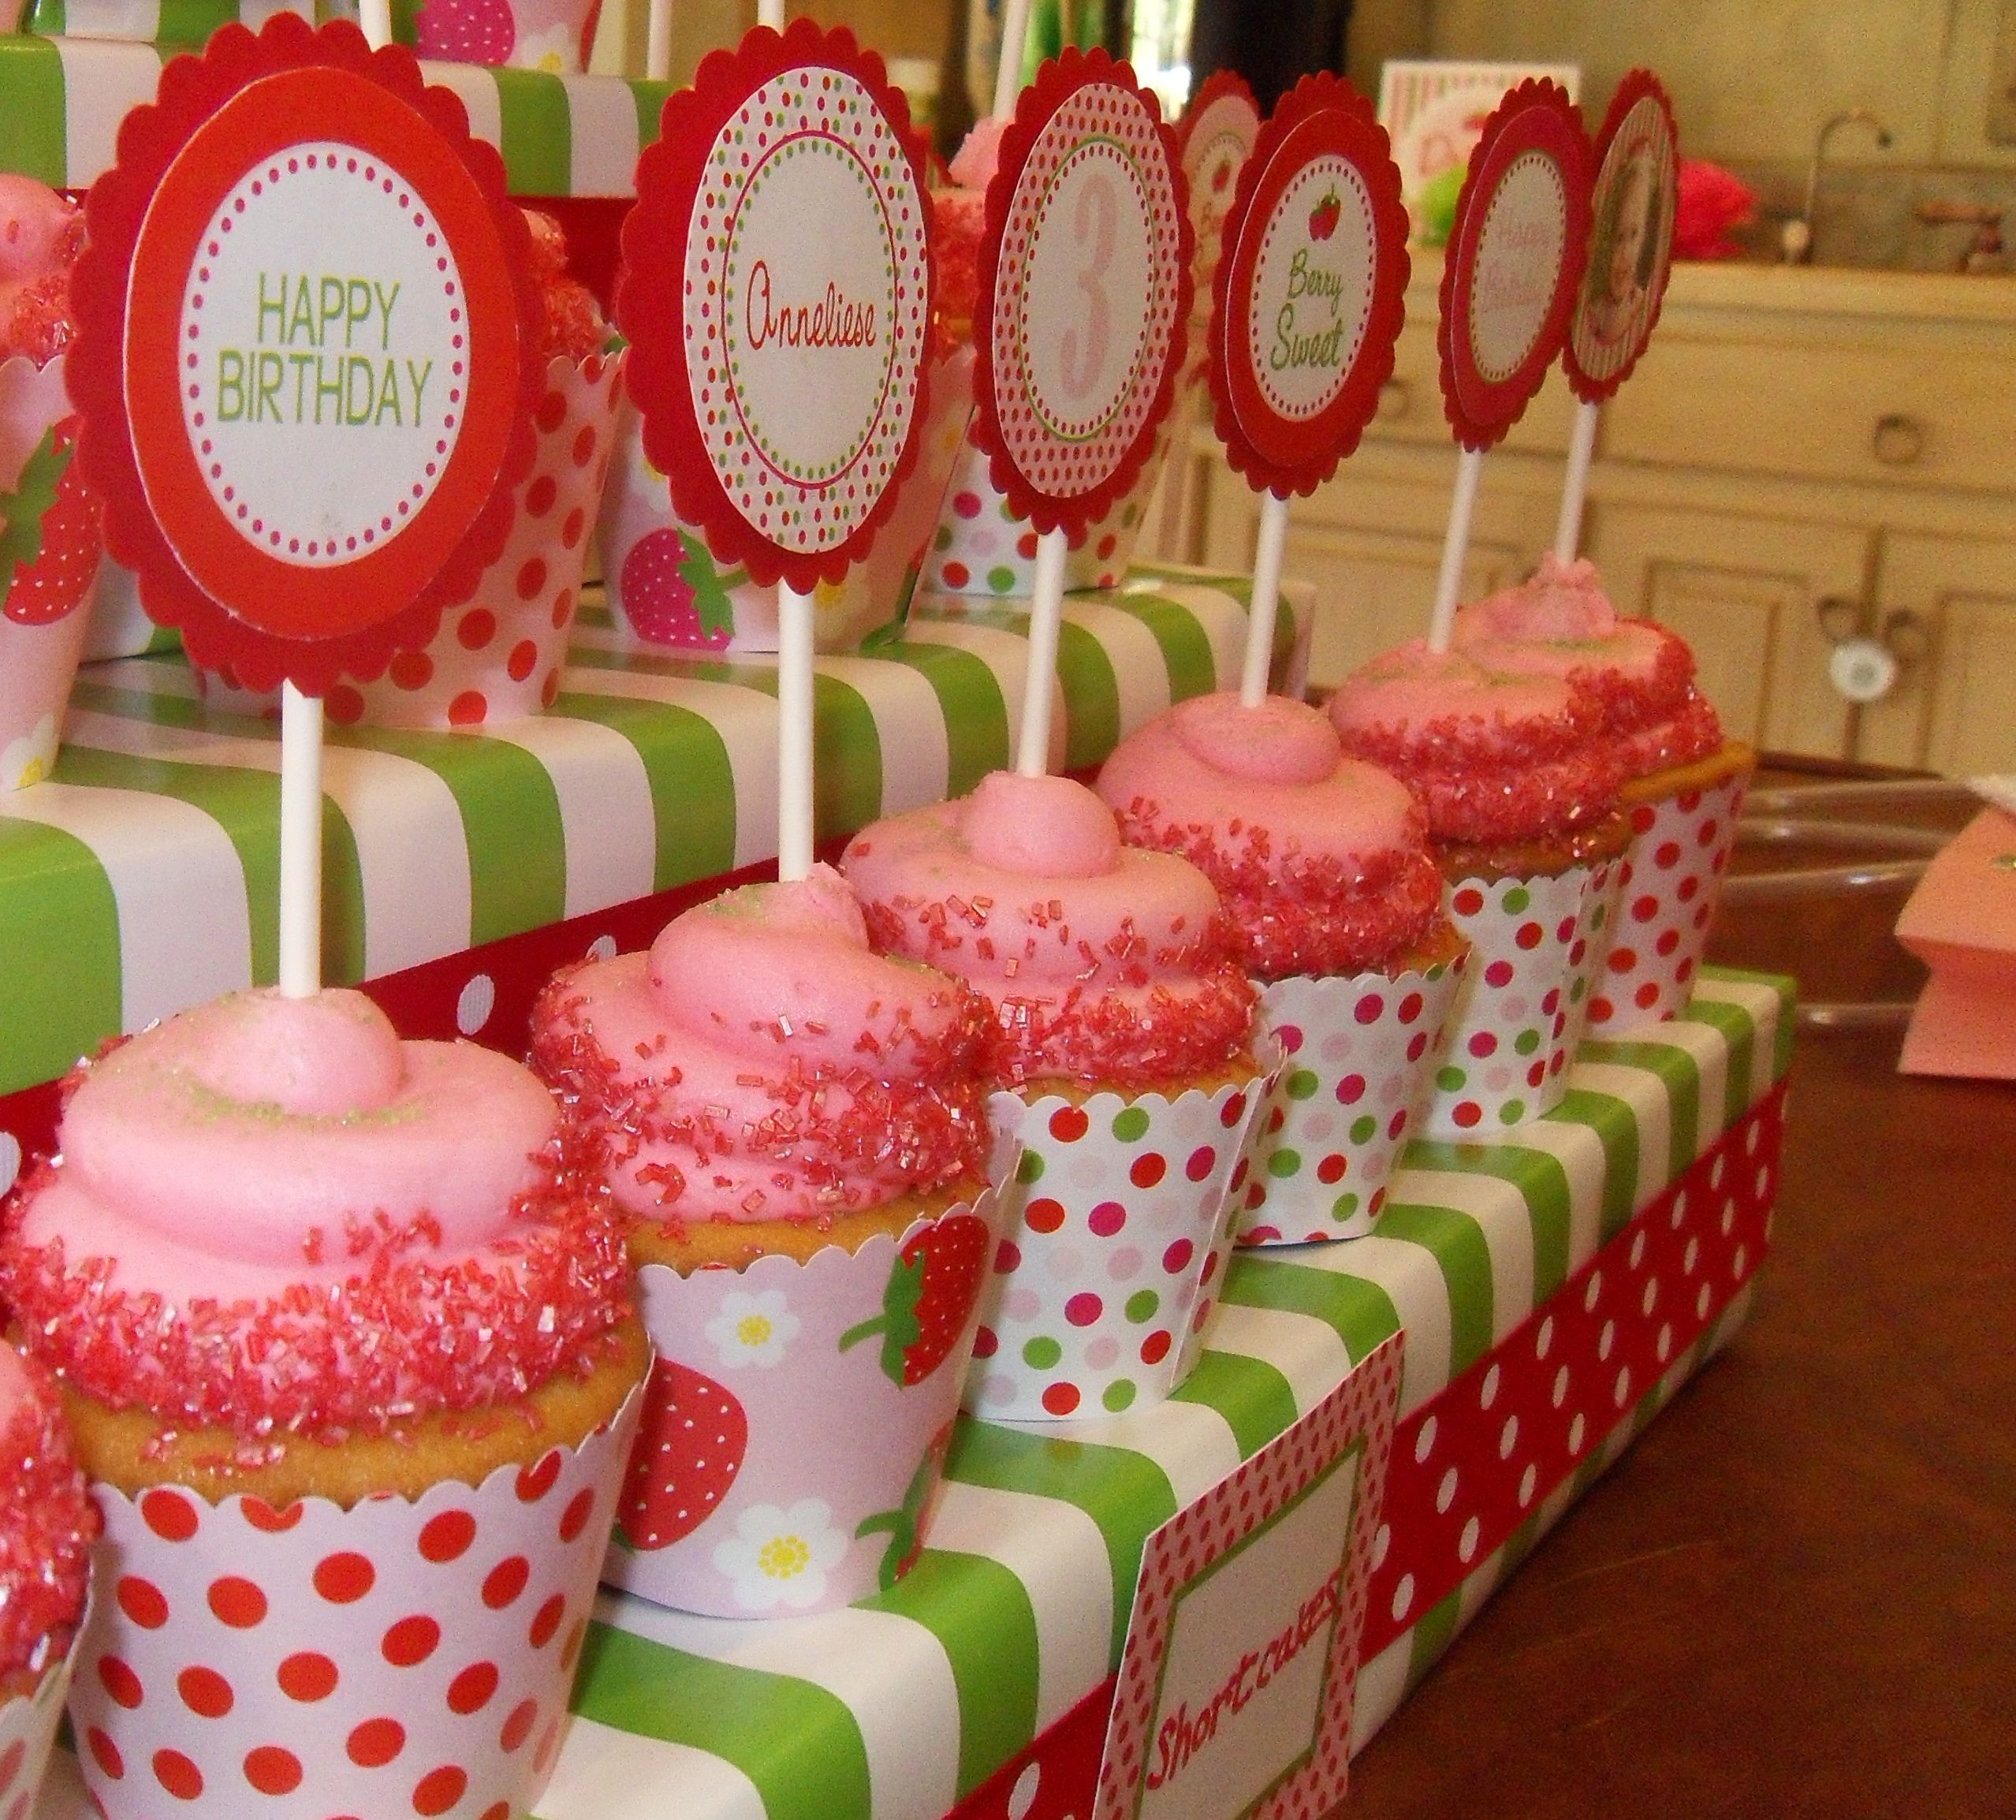 Baby shower table decorations candy table for baby shower decoration - Best 25 Strawberry Shortcake Birthday Ideas On Pinterest